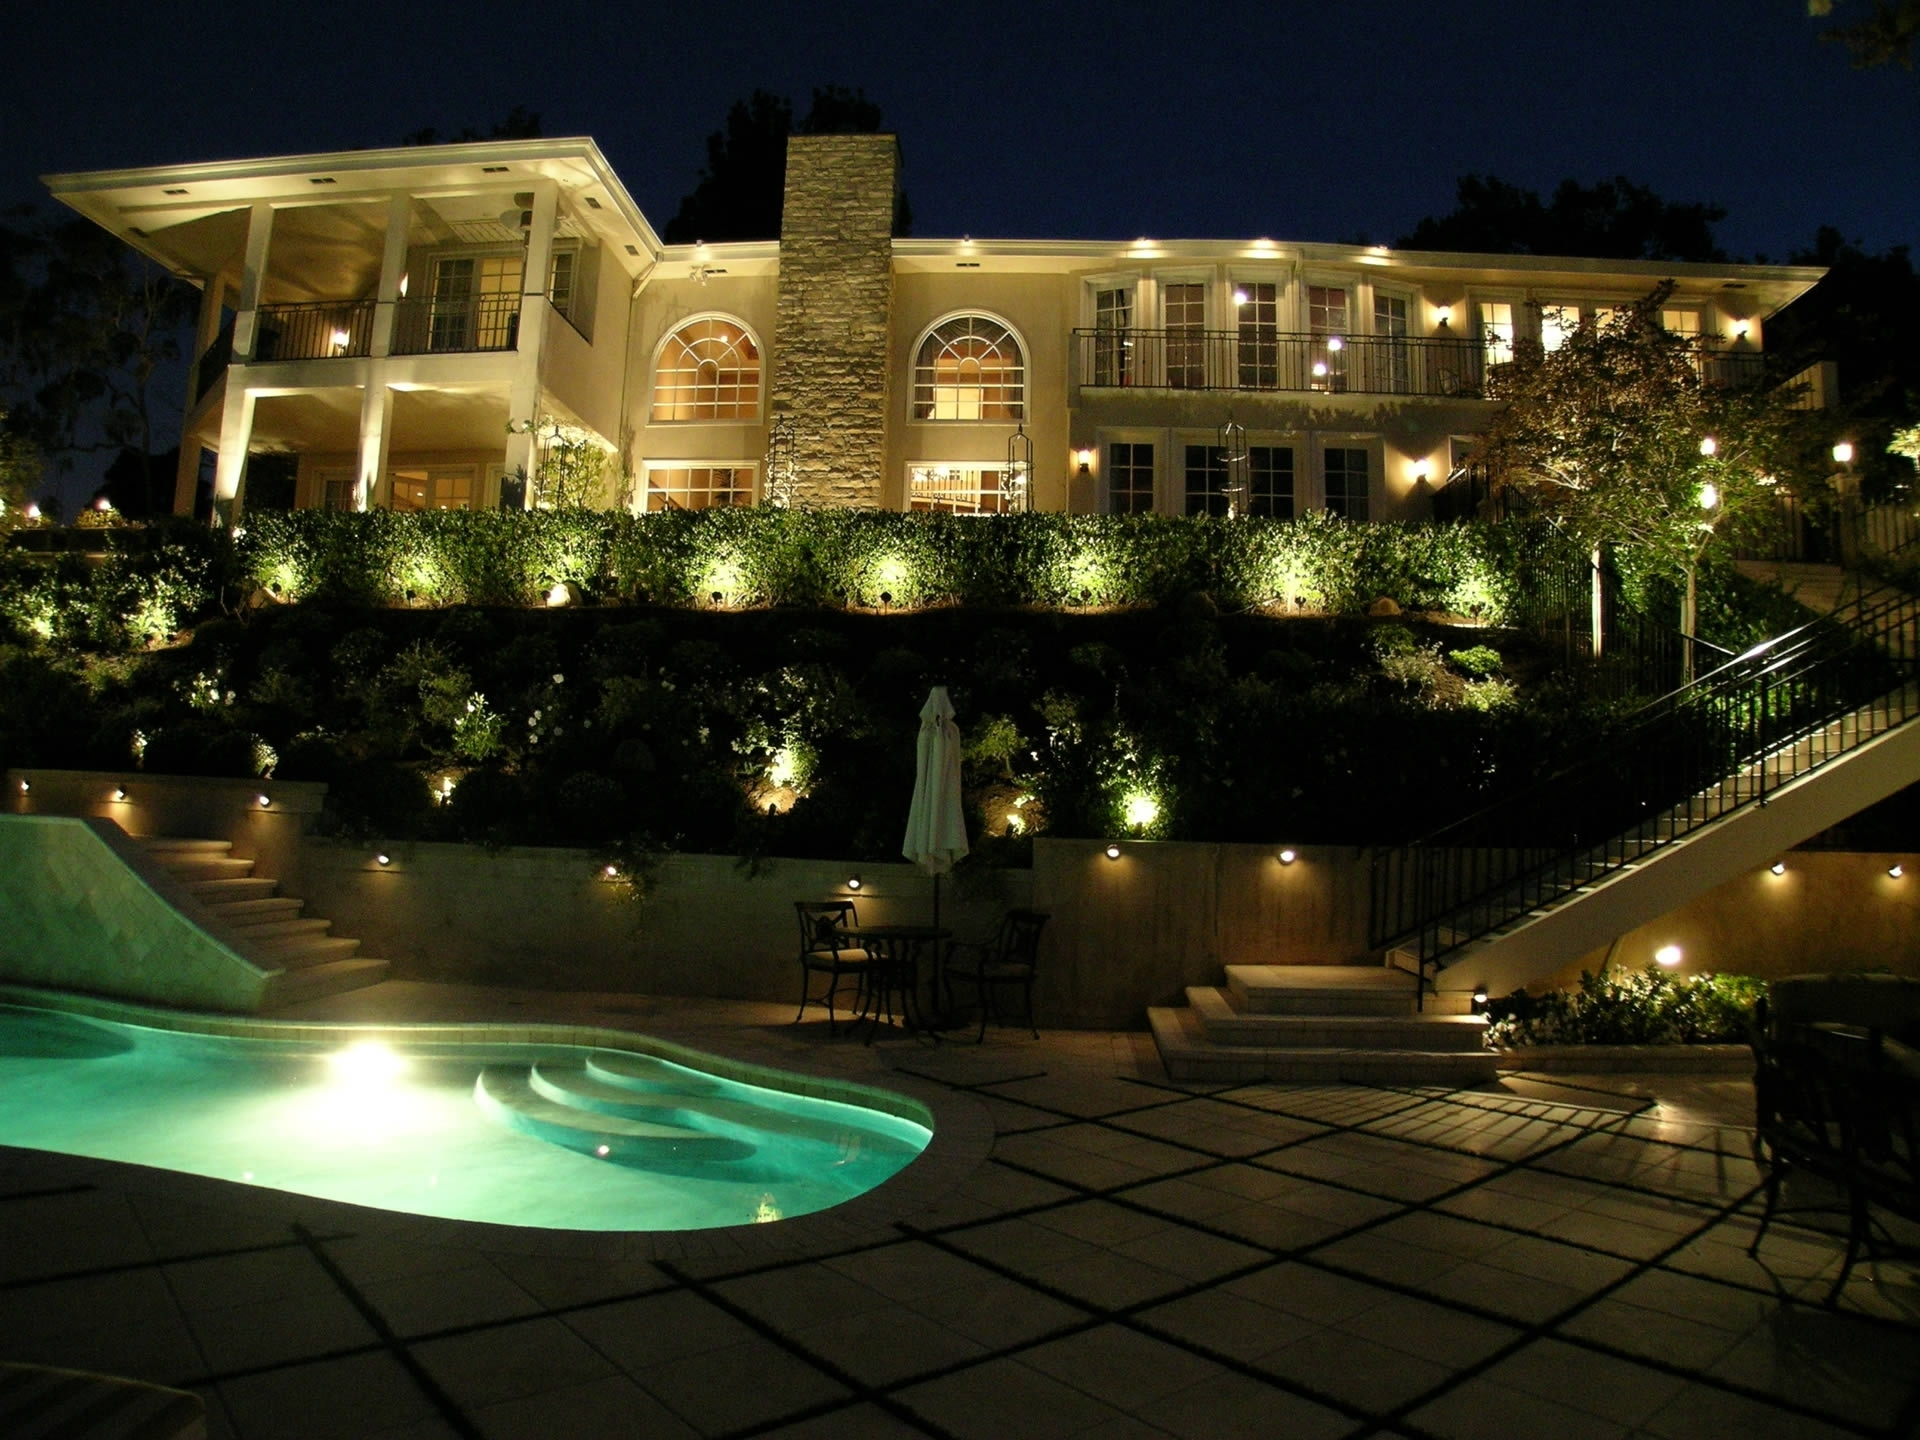 Kichler Outdoor Landscape Lighting With Most Up To Date This Landscape Looks Really Great (View 10 of 20)